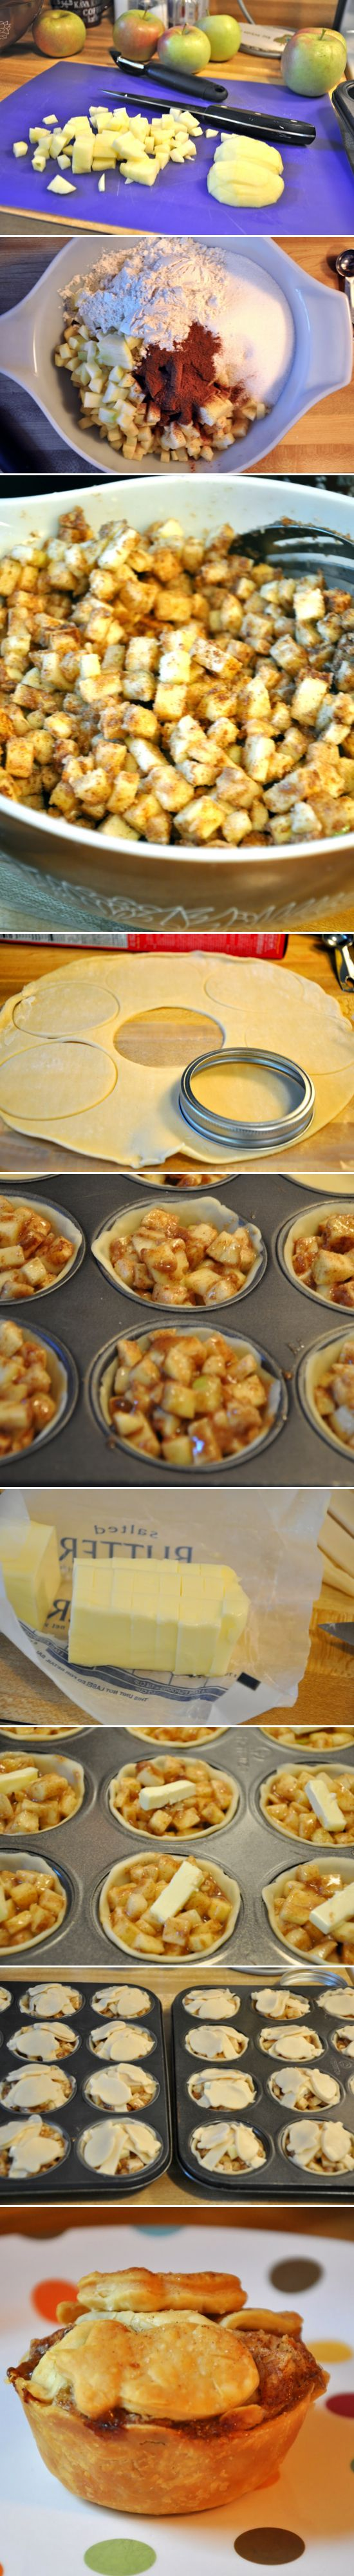 Mini Apple Pies (muffin tin recipe)